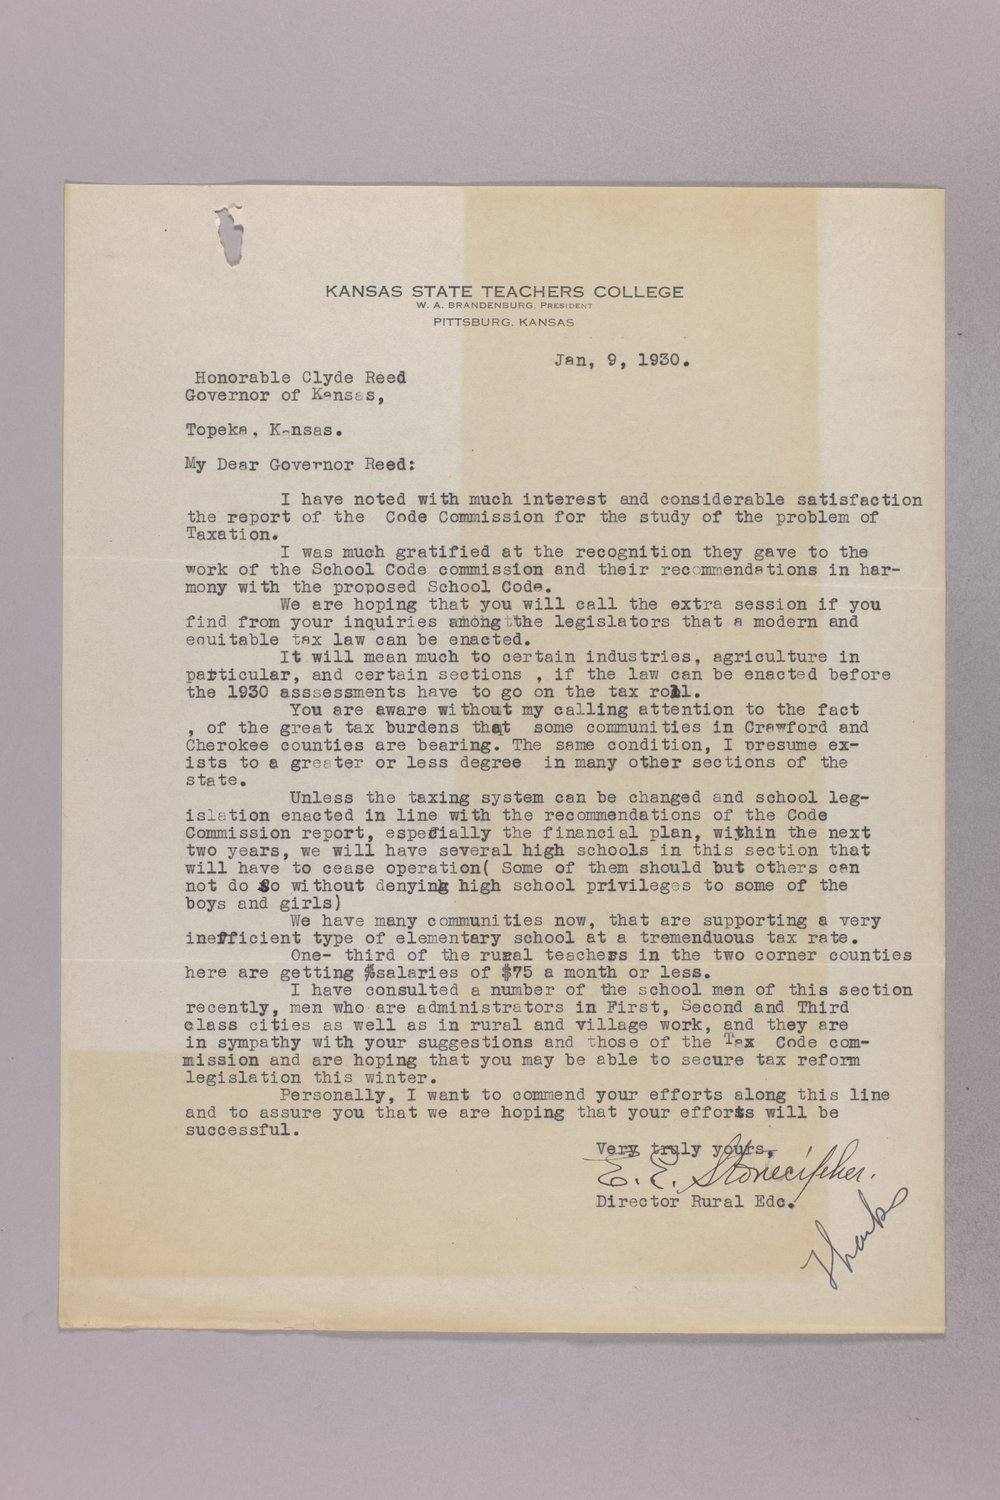 Governor Clyde M. Reed correspondence, Tax Code Commission - 43